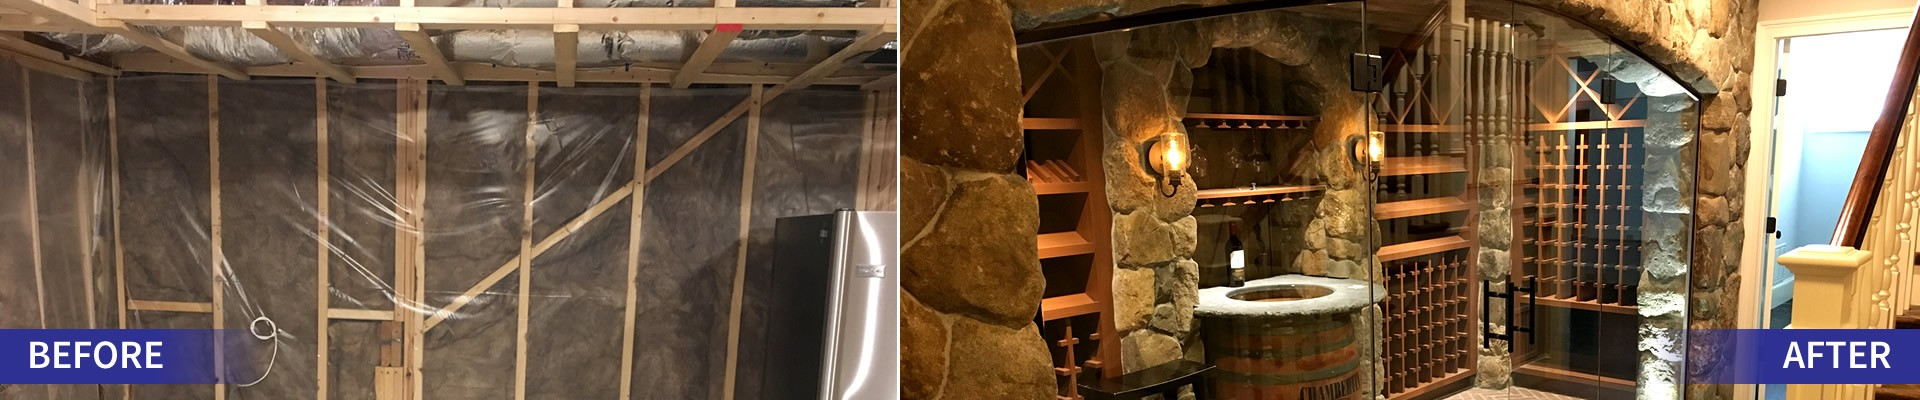 DE Small Electric - Before After of Wine Cellar